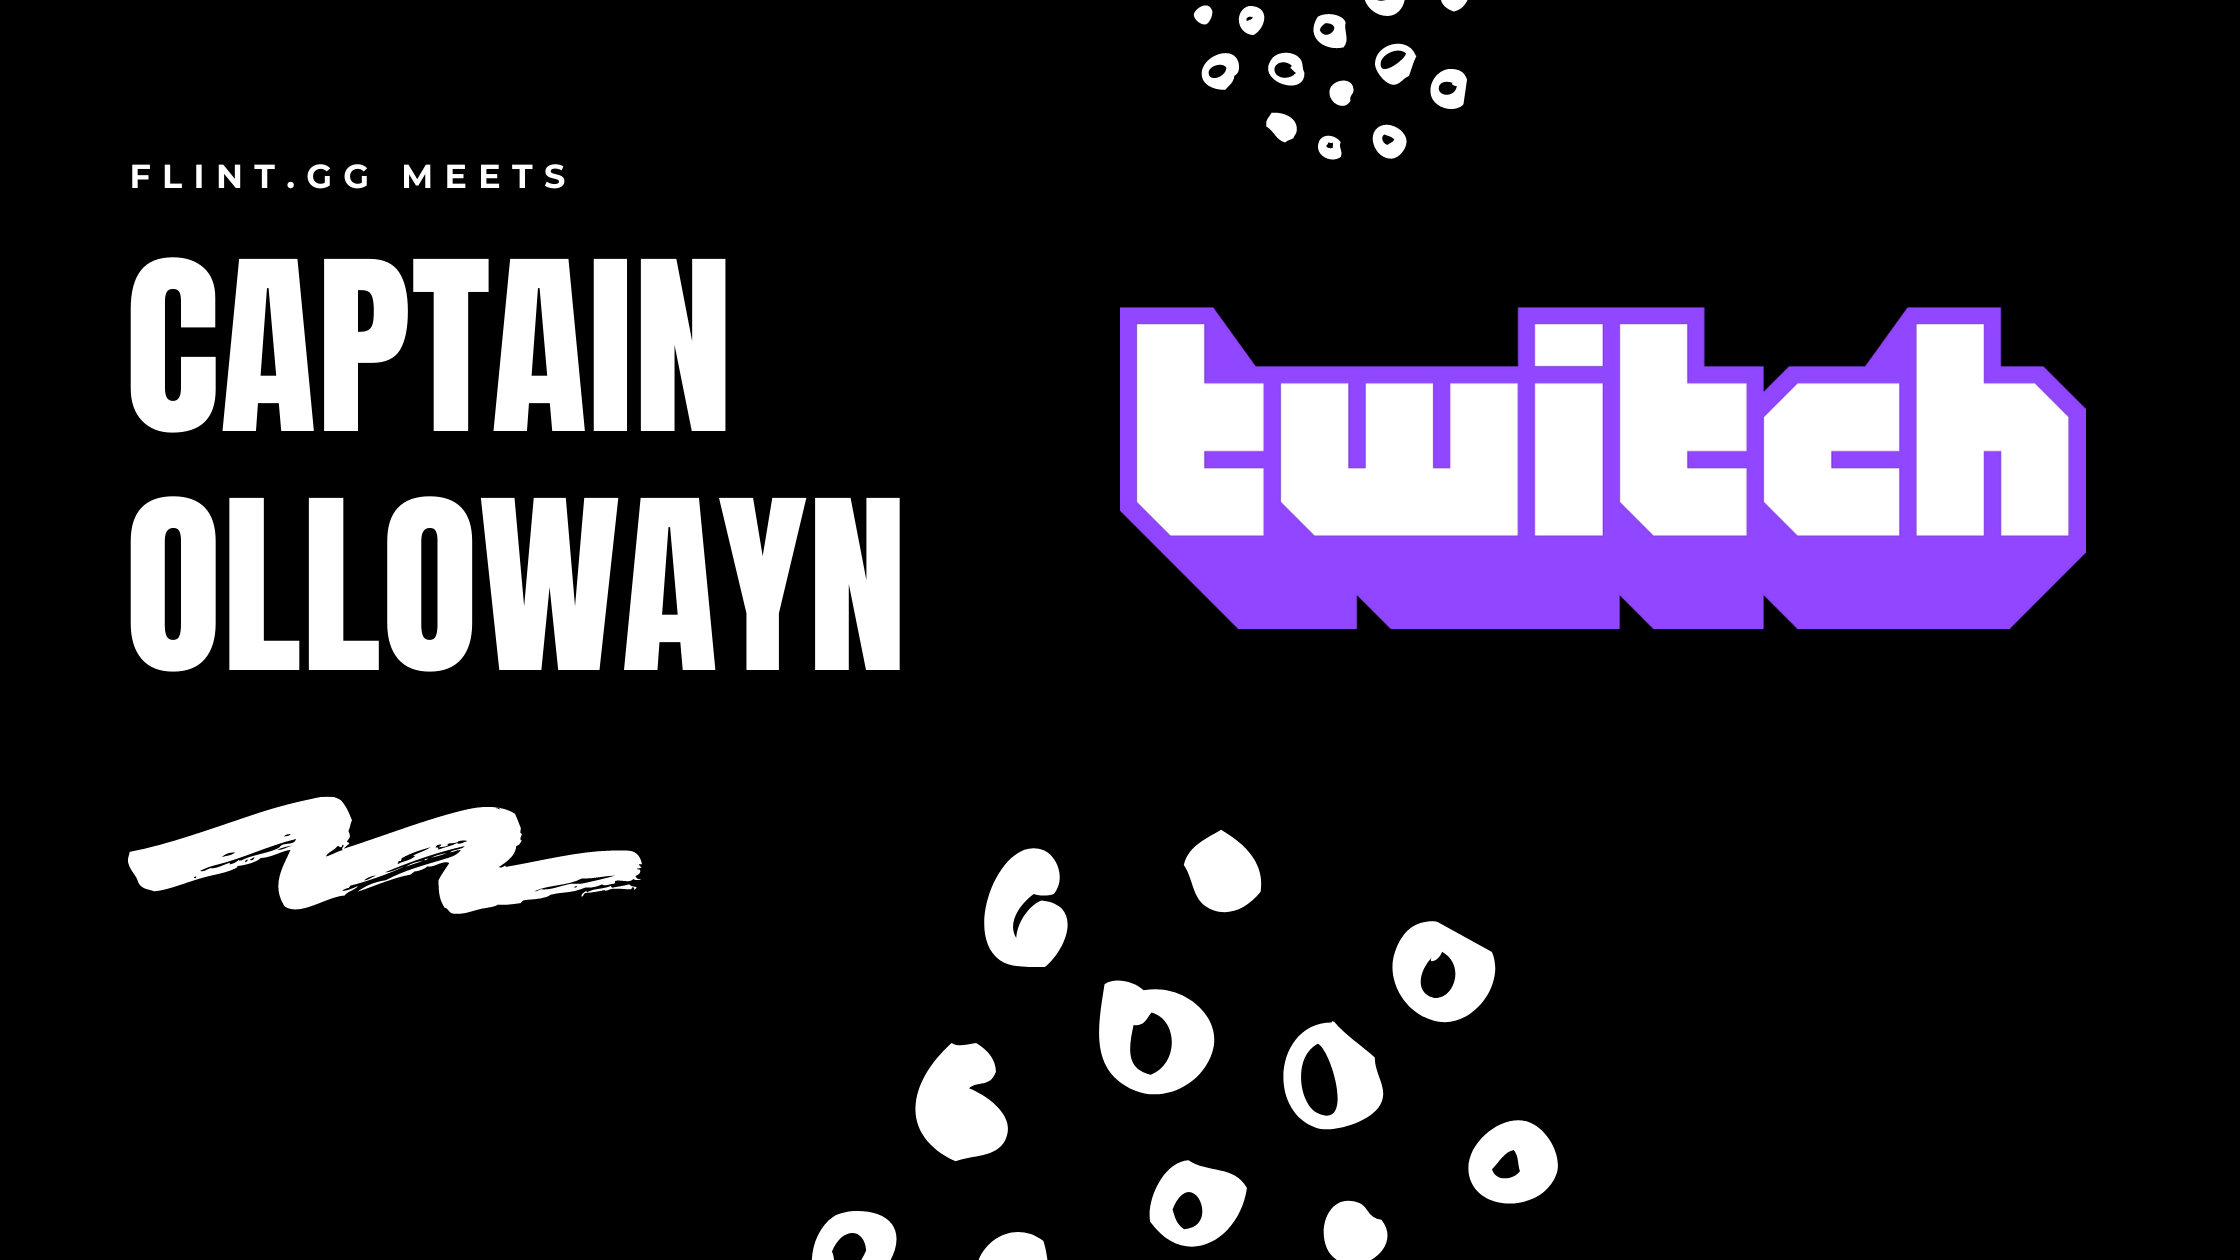 flint.gg meets Streamer Captain Ollowayn on Twitch for a LIVE Workshop